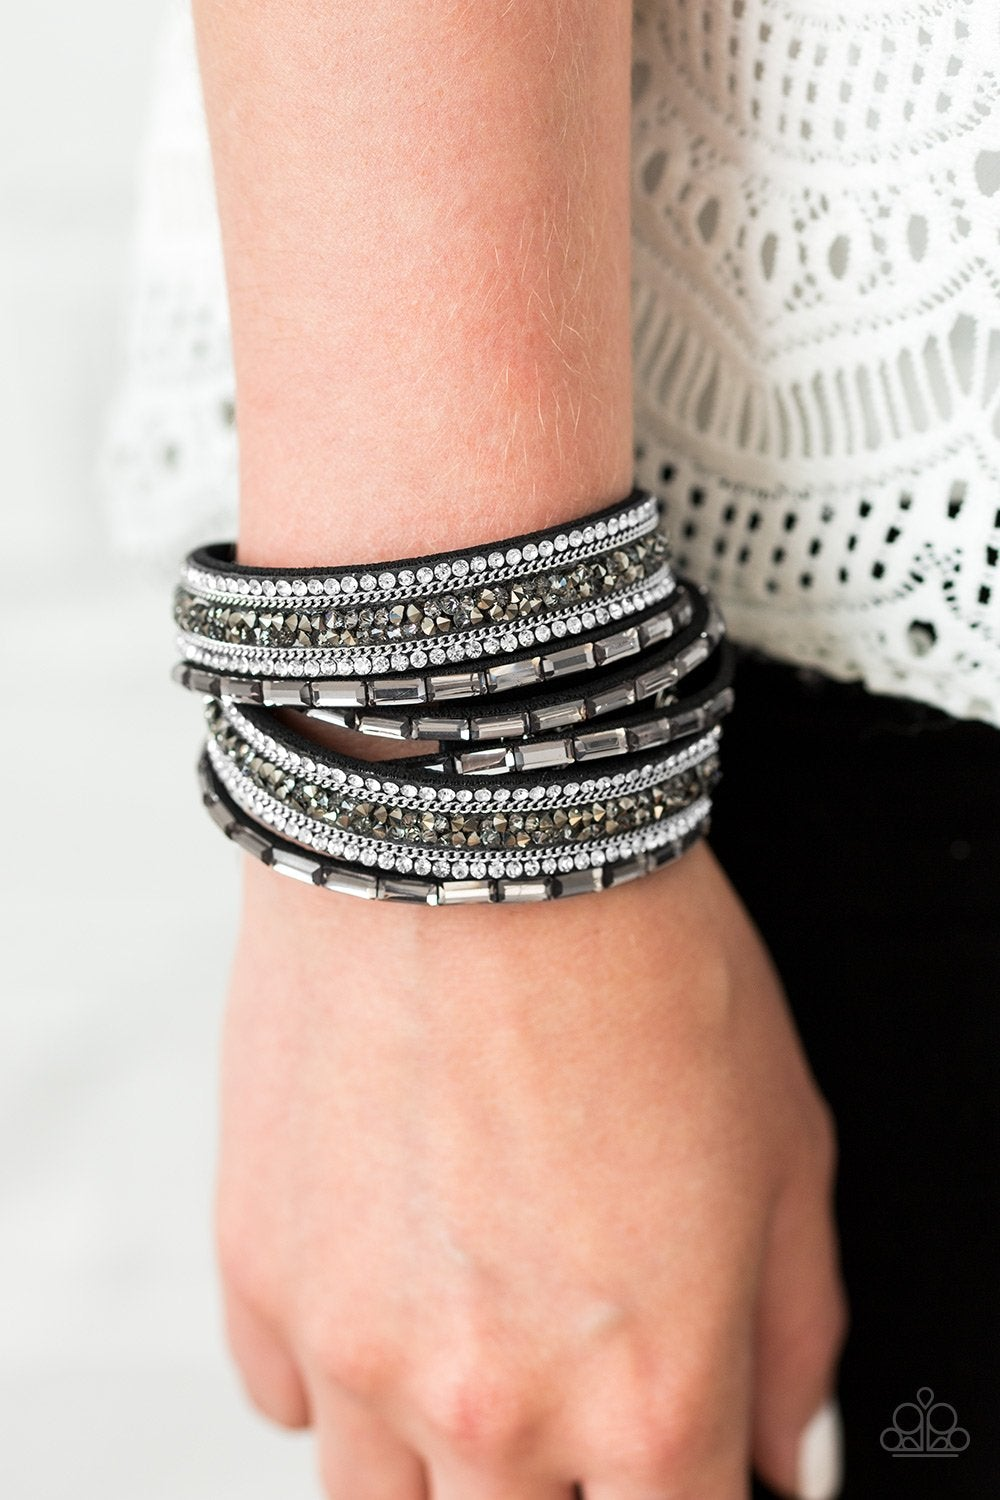 Varying in cut and shimmer, glittery white, smoky, and hematite rhinestones are sprinkled along black suede bands for a sassy look. The elongated design allows for a trendy double wrap around the wrist. Features an adjustable snap closure.